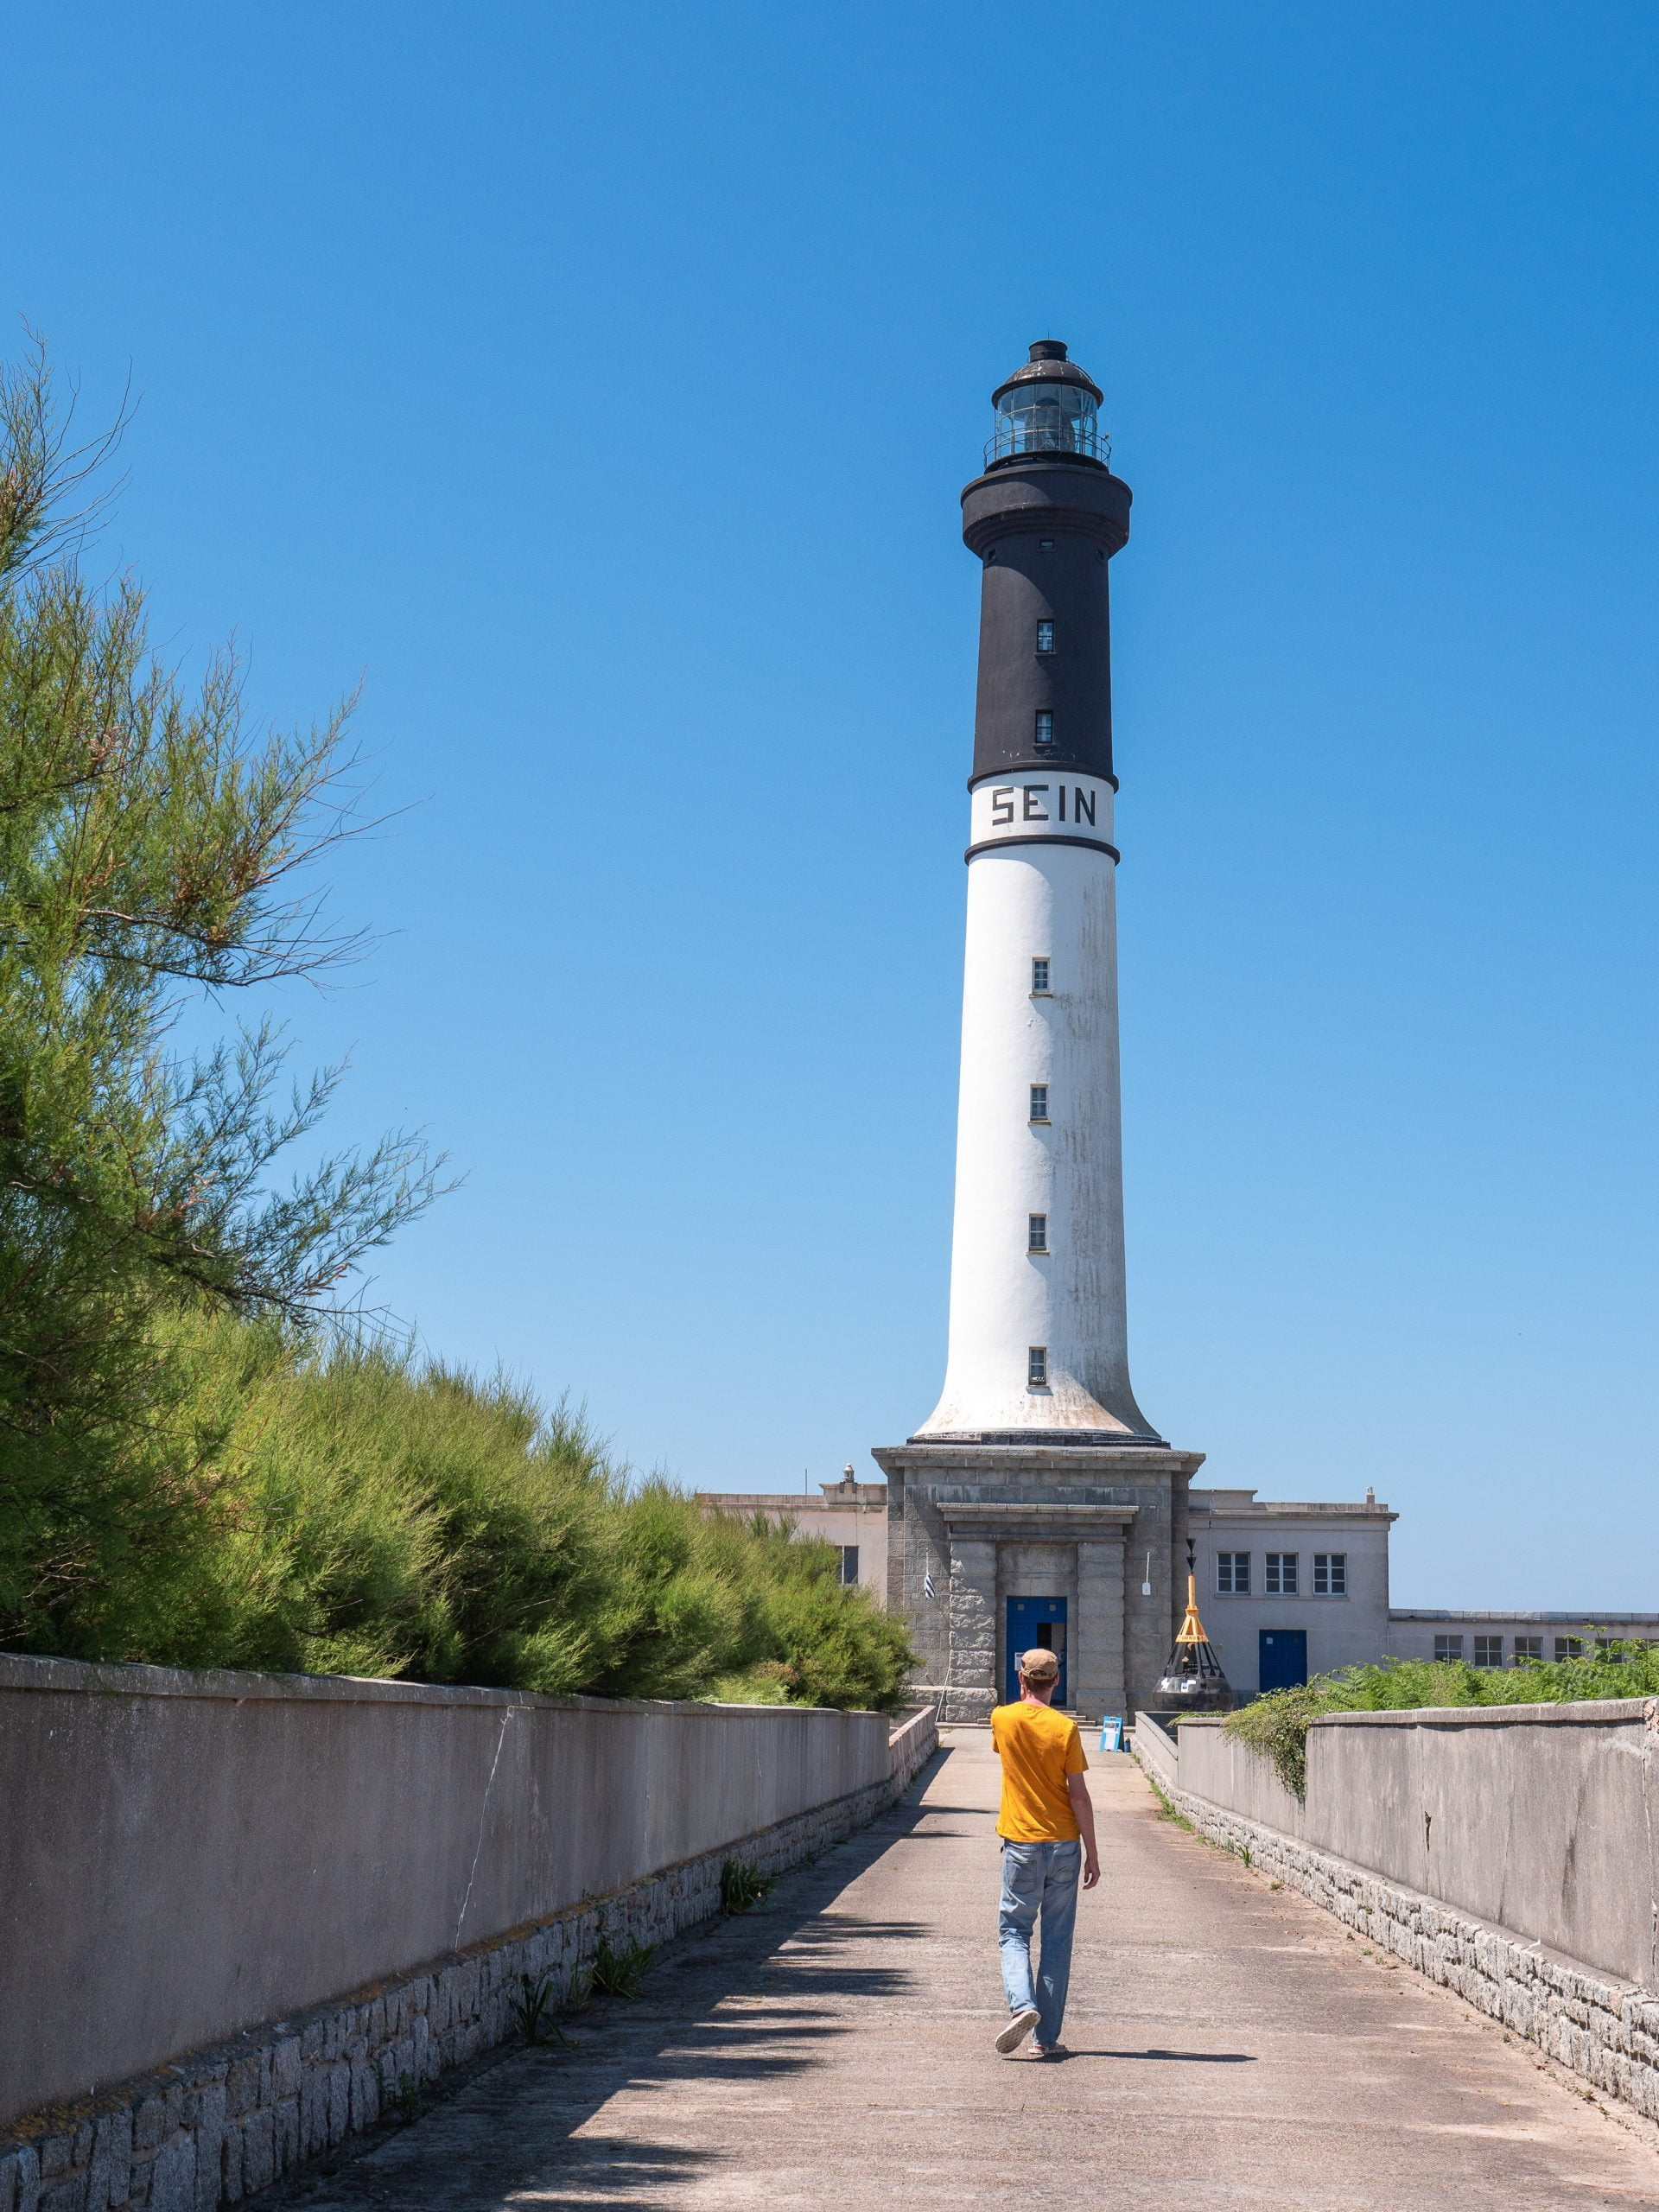 Sein phare scaled - Les globe blogueurs - blog voyage nature